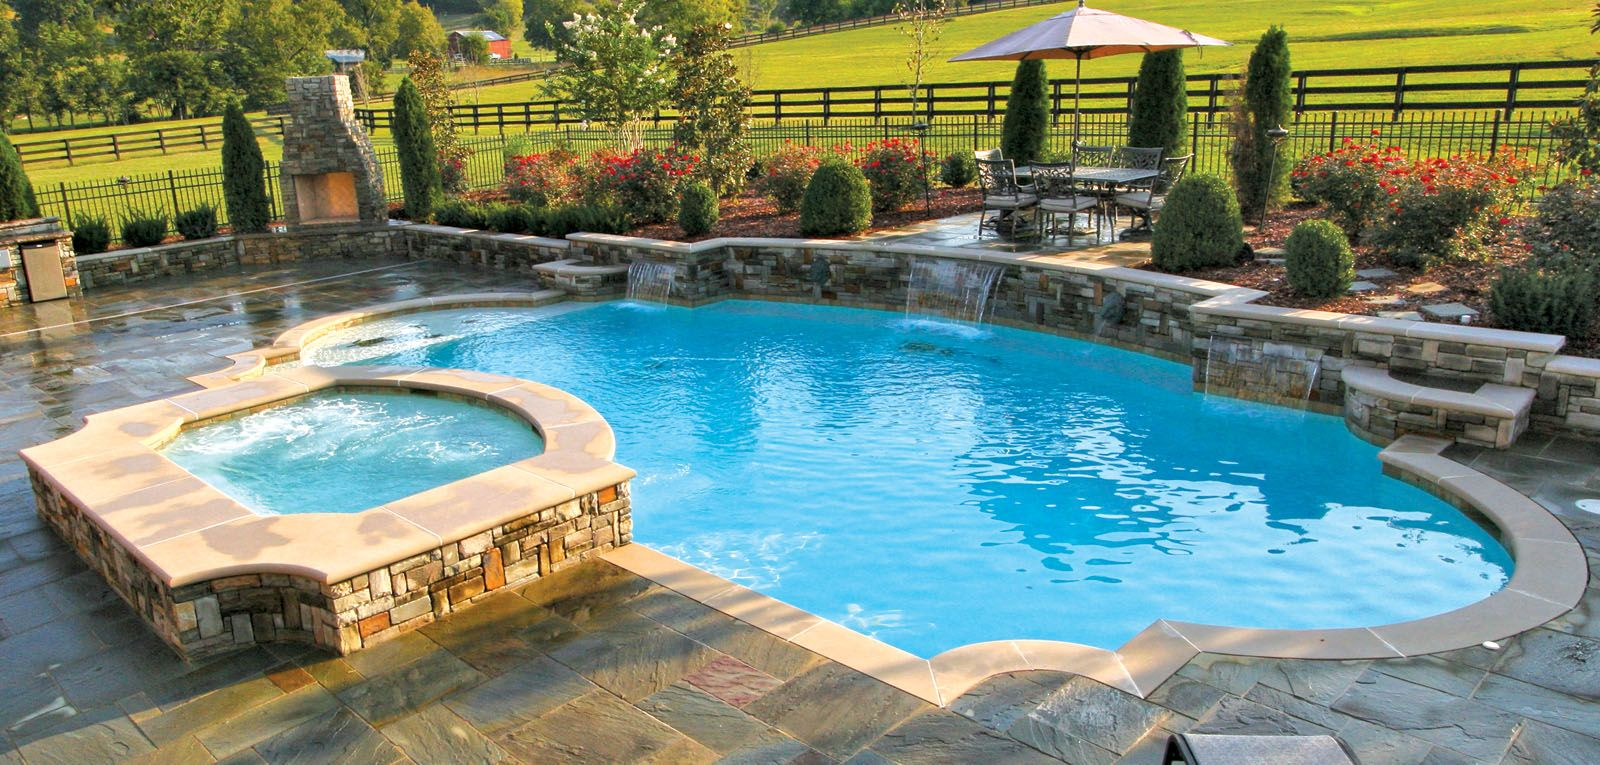 Roman Style Pools Grecian Style Pool Design Pictures Swimming Pool Pictures Pool Photos Backyard Pool